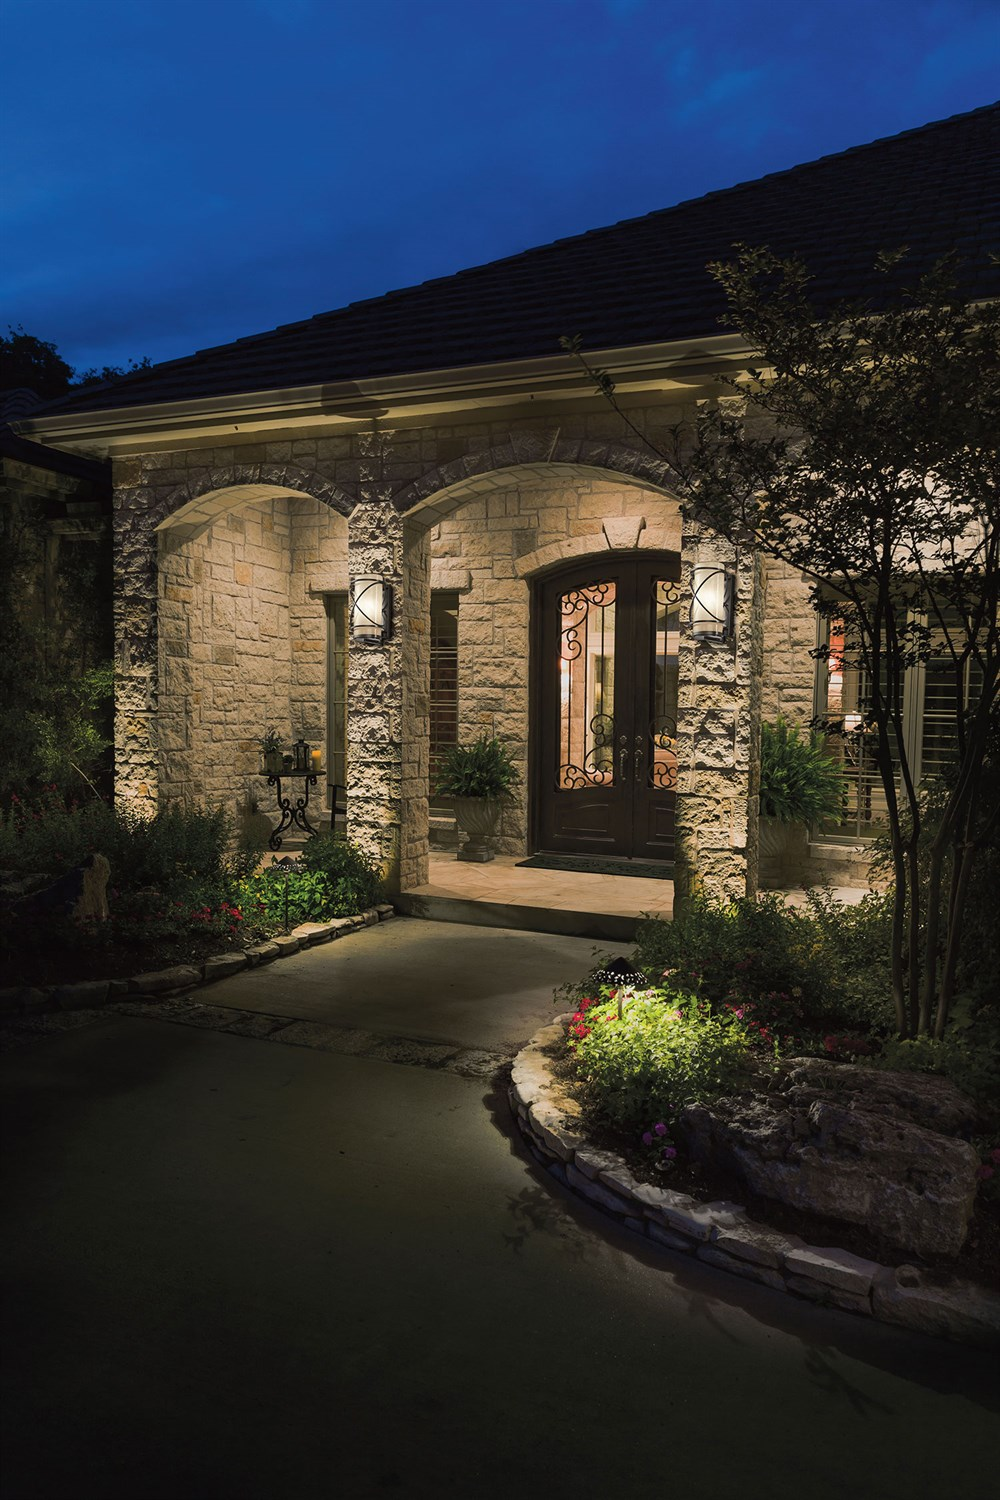 Trafari Outdoor Glass and Bronze Wall Lamps